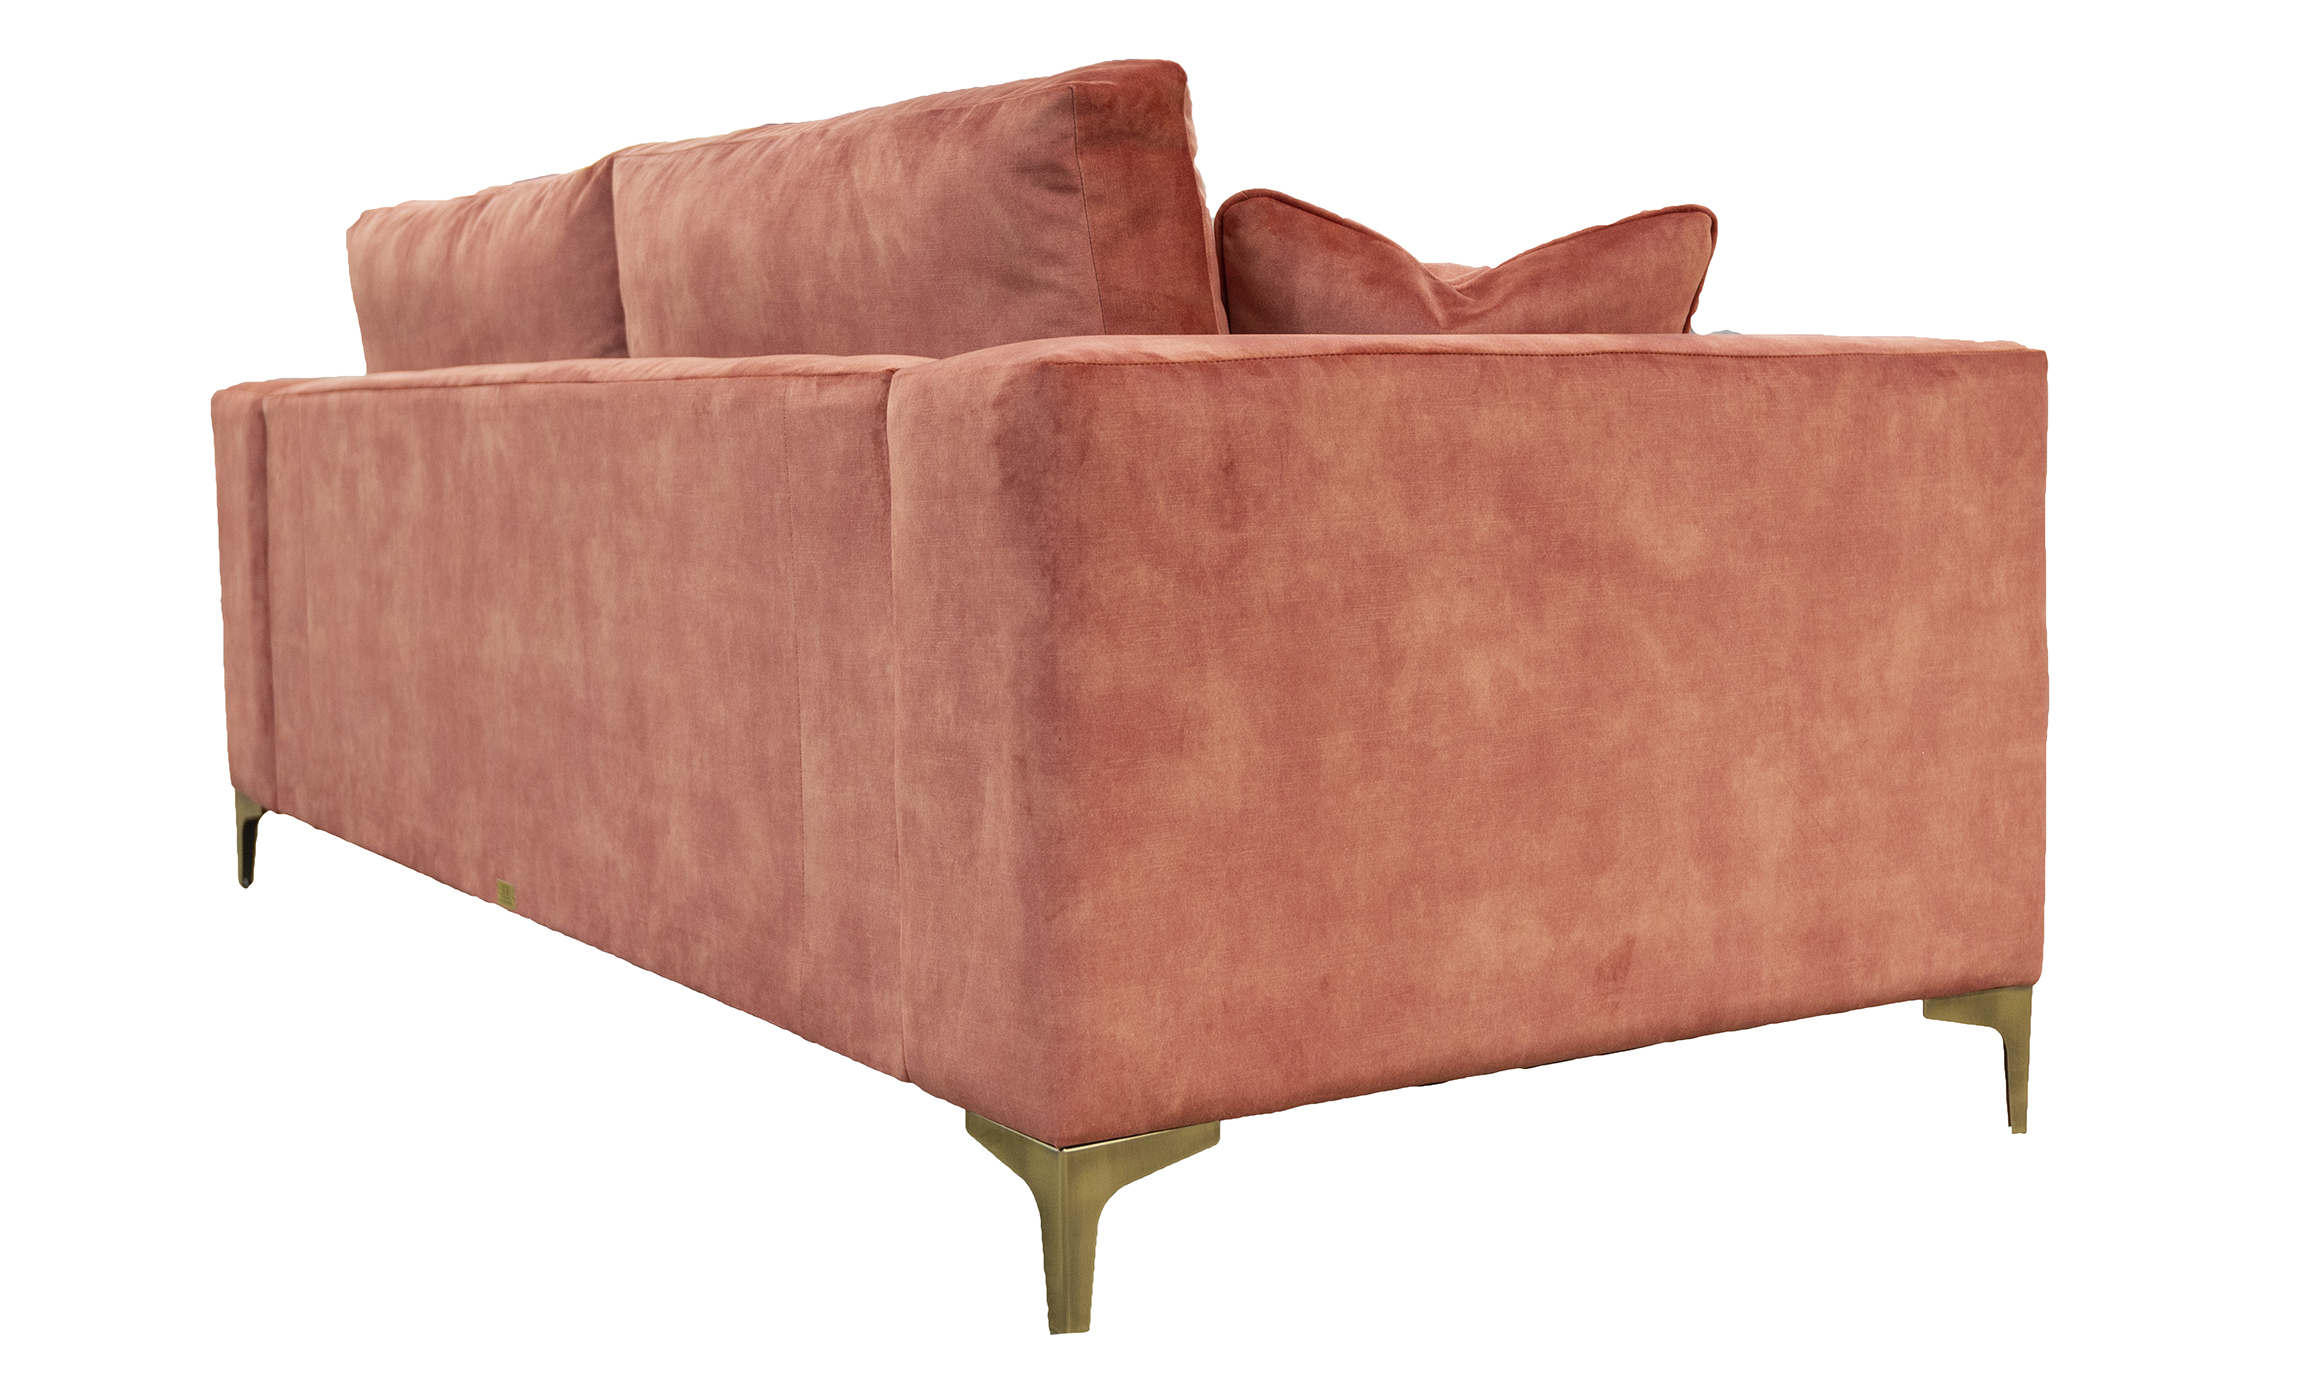 Baltimore 3 Seater Sofa in Lovely Coral, Gold Collection Fabric